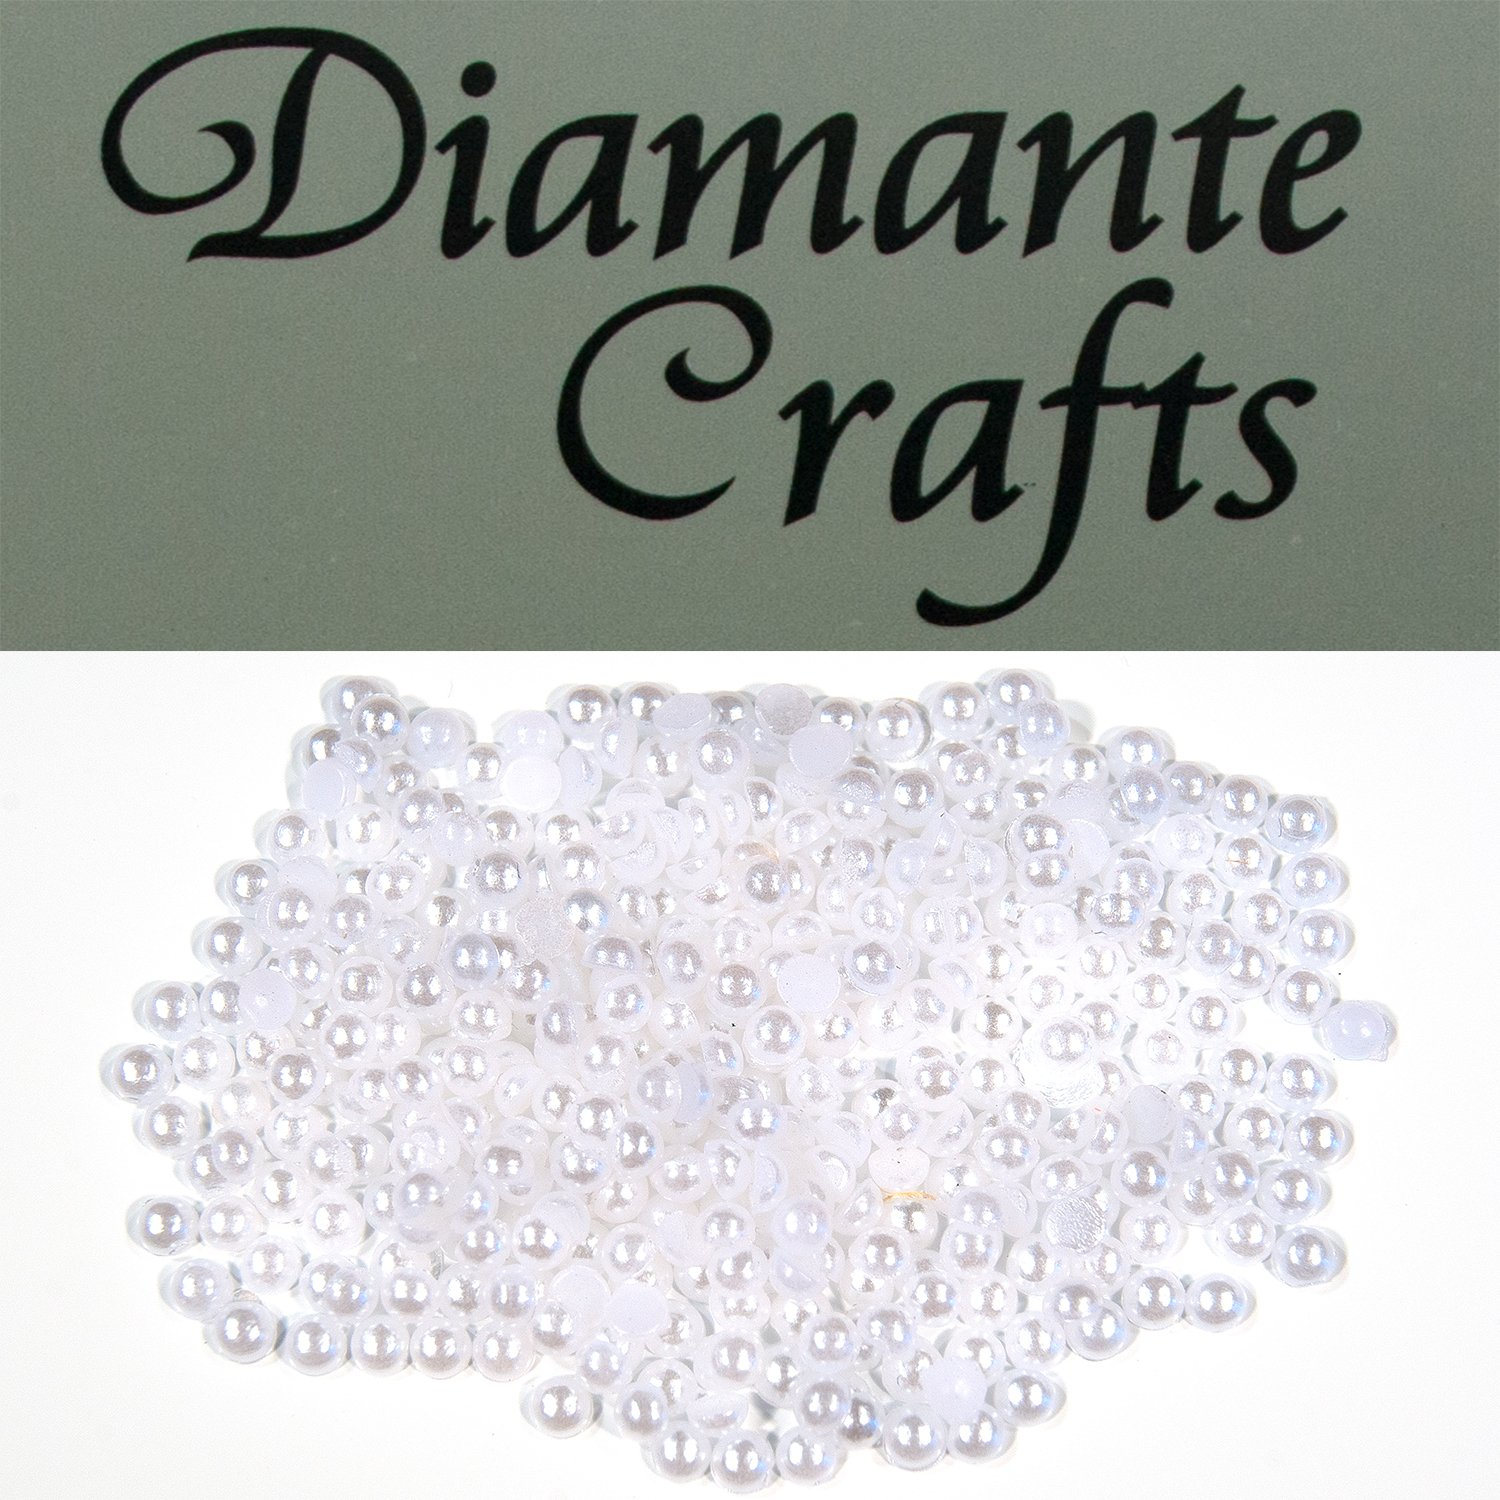 300 x 2mm White Round Pearls Loose Flat Back Nail Vajazzle Body Gems - created exclusively for Diamante Crafts